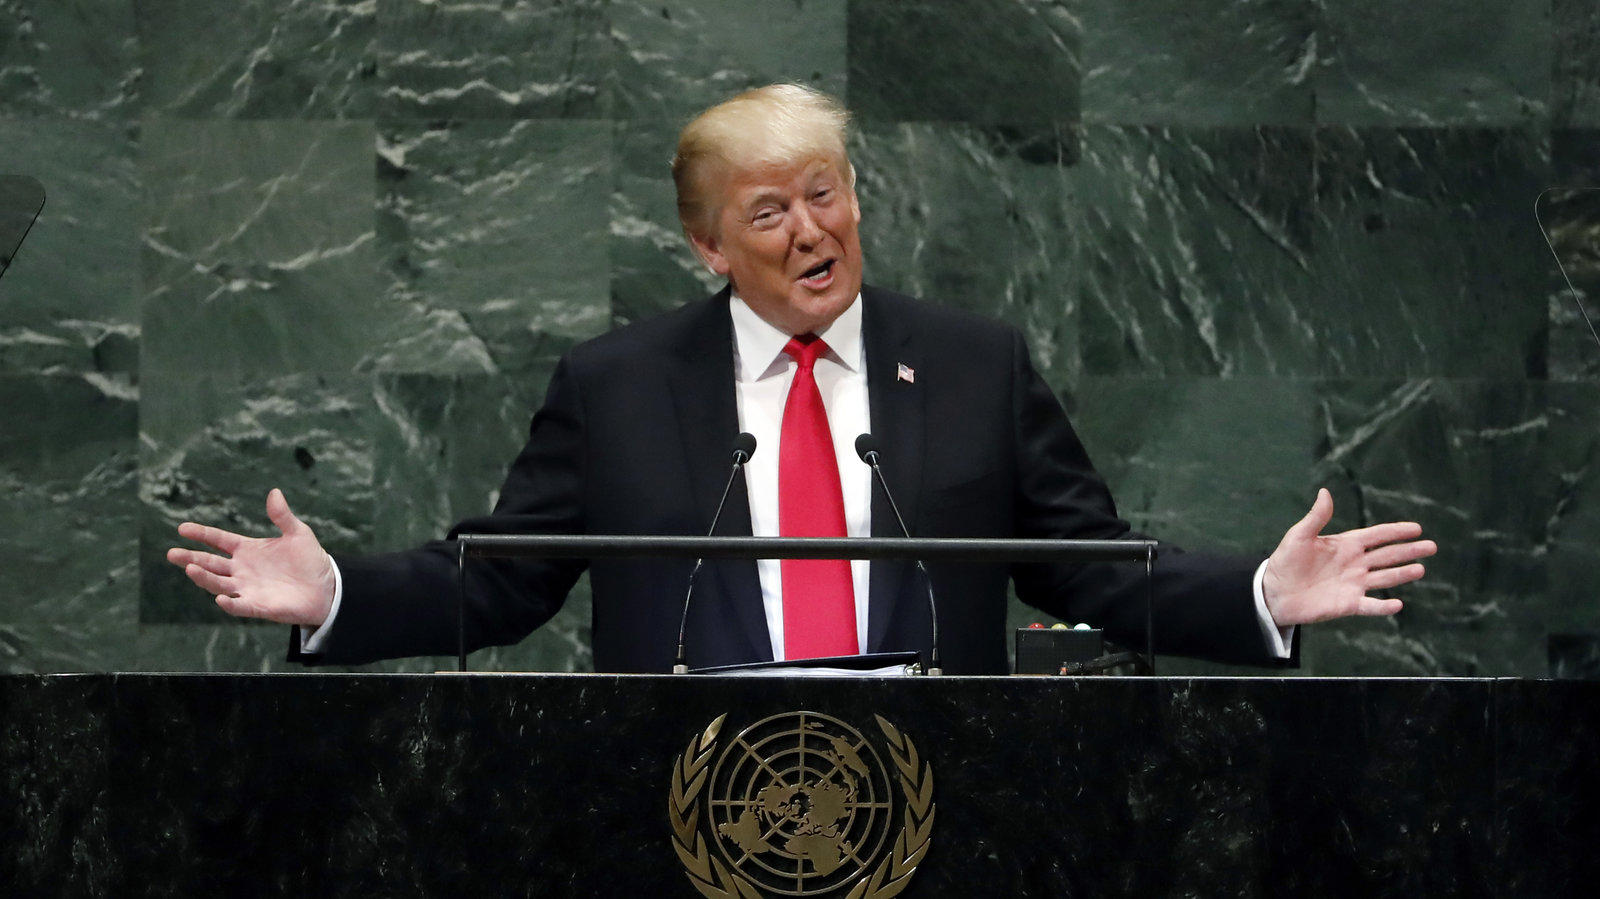 Trump Holds Press Conference At UN